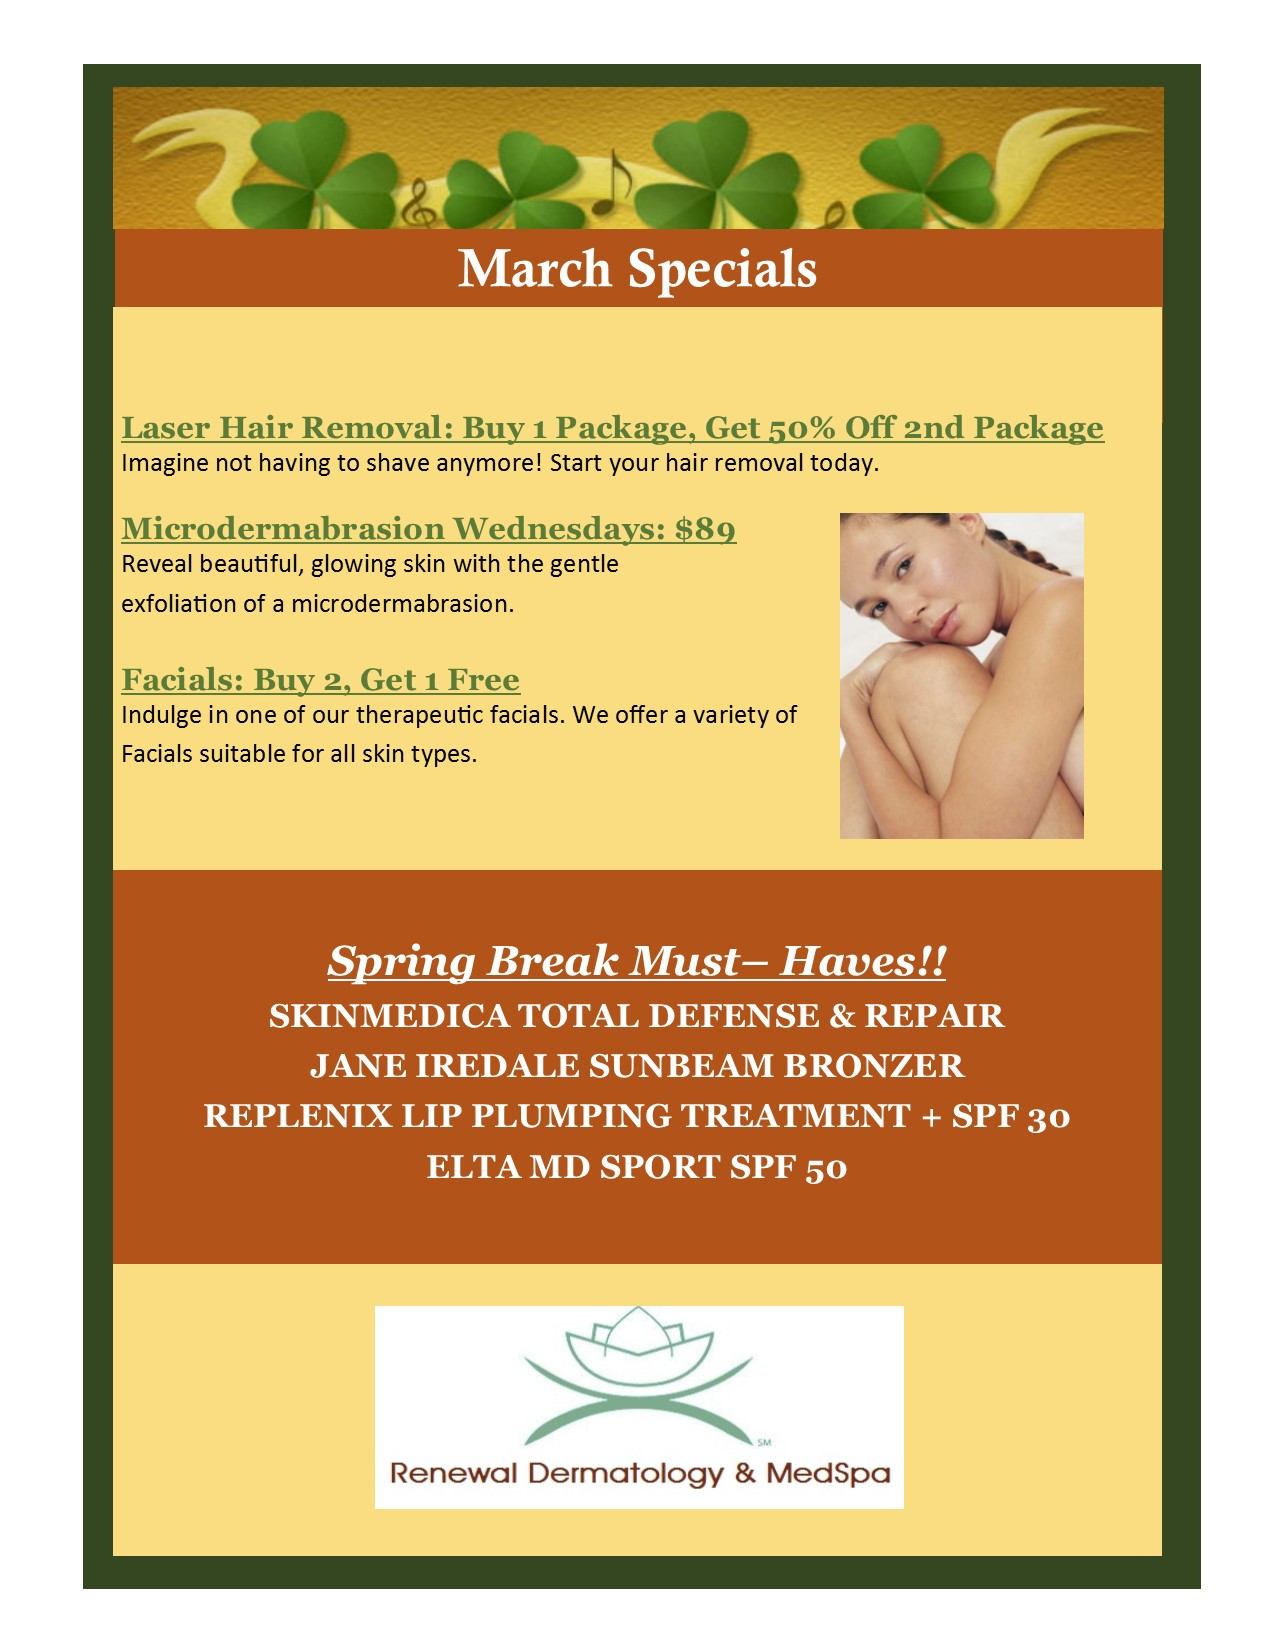 March 2018 Specials Flyer pic